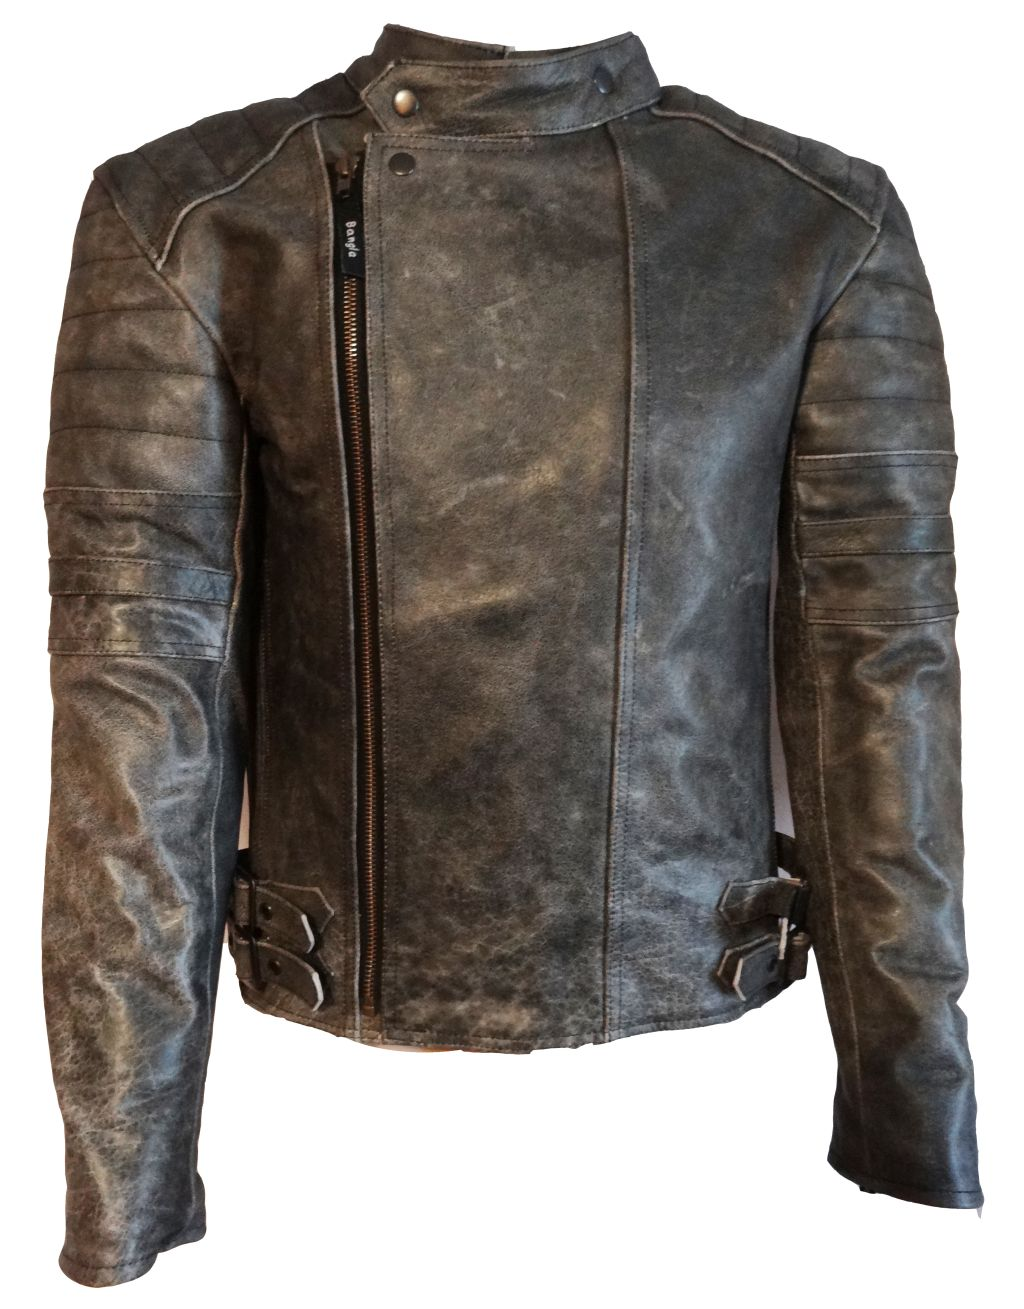 bangla retro klassik motorrad lederjacke chopperjacke protektor grau s xxxl. Black Bedroom Furniture Sets. Home Design Ideas